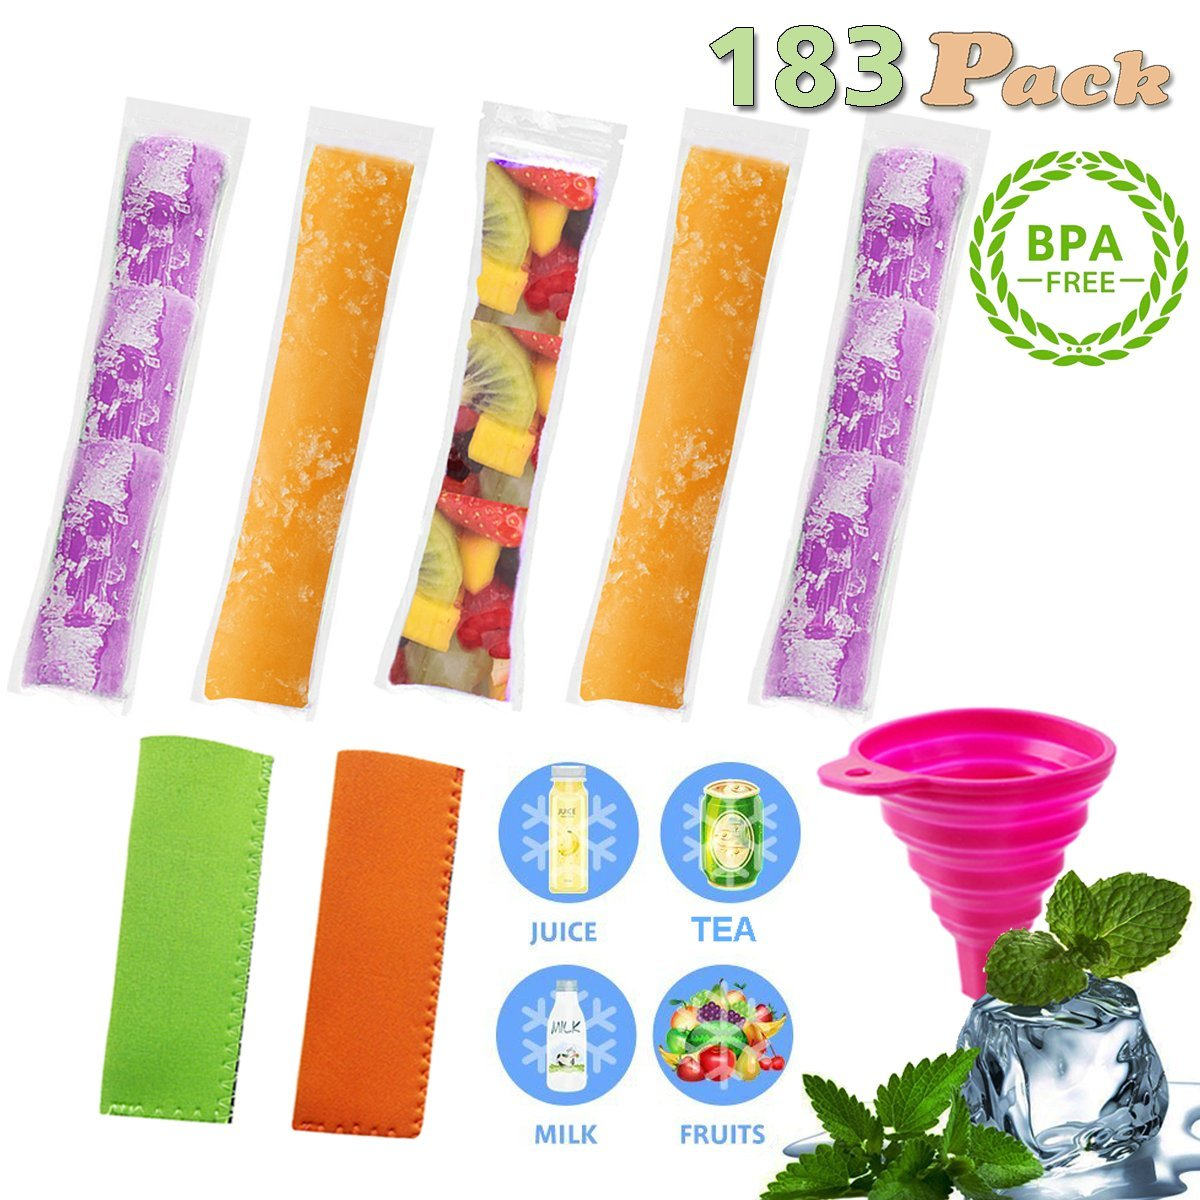 EXSPORT 180 PCS Pop Bags Pop Mold Bags Popsicle Pouches Popsicle Molds Bags BPA Free and FDA Approved Ice Pop Pouch with 2 PCS Popsicle Holders for Yogurt, Ice Candy, Ice cream Party Favors